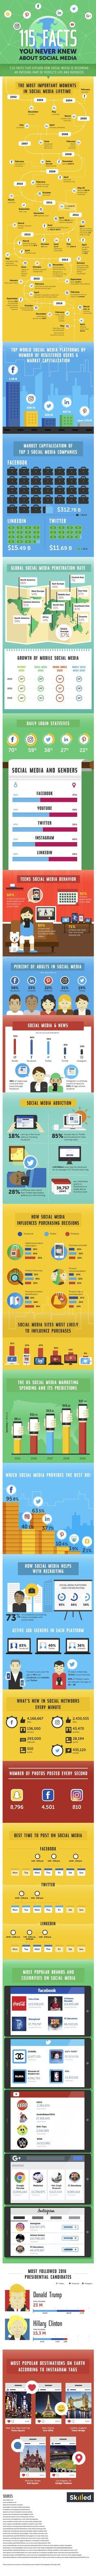 The latest social media facts on a beautiful infographic. Important for small businesses doing social media marketing. History of social media, how it influences purchasing, ad spending and much more. Click to blog for more stats!